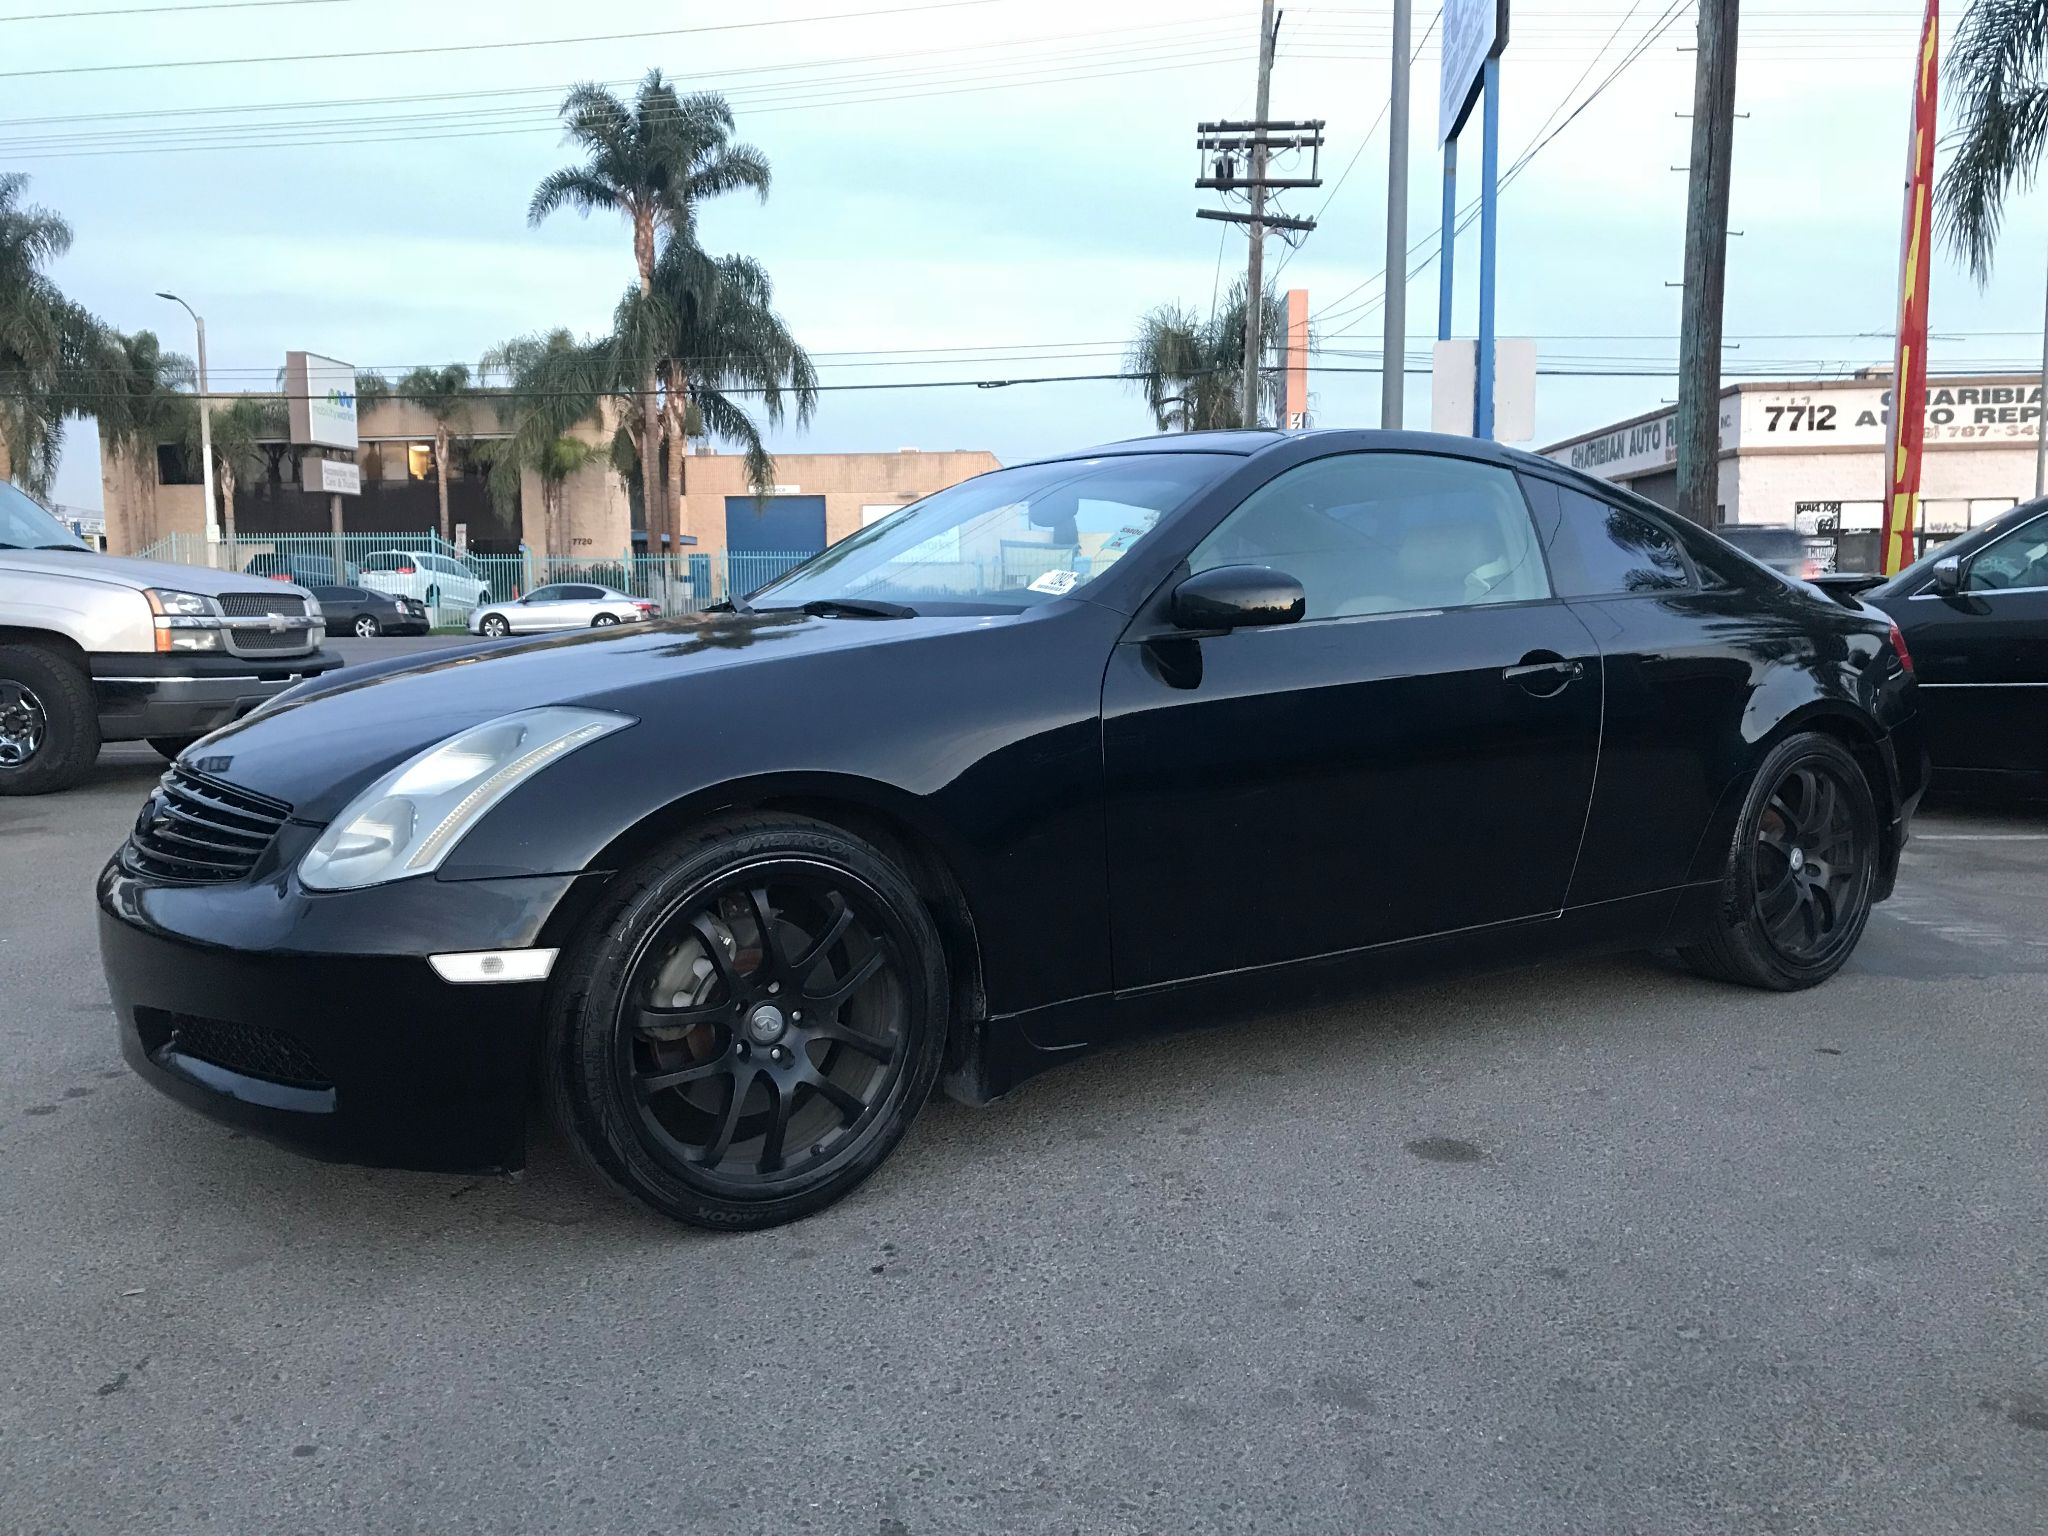 Used 2005 Infiniti G35 Coupe Ss At City Cars Warehouse Inc